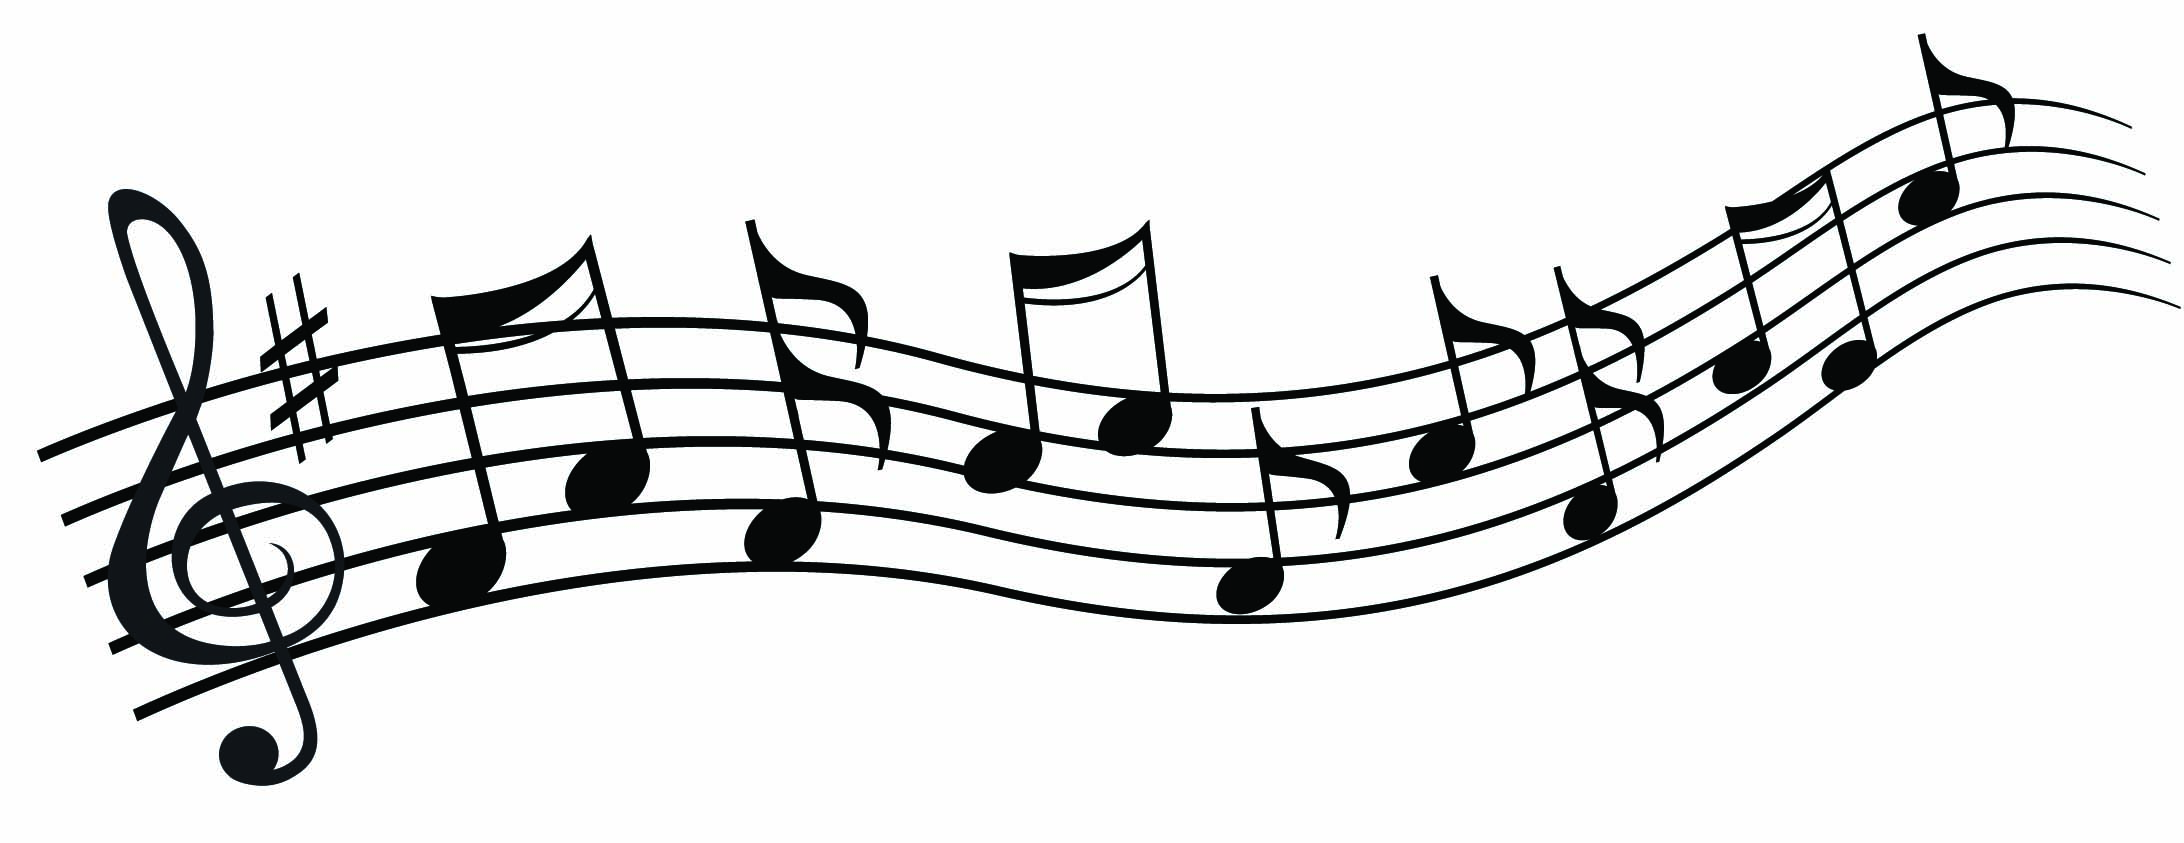 2184x843 Music Notes Black And White Music Notes Clipart Black And White